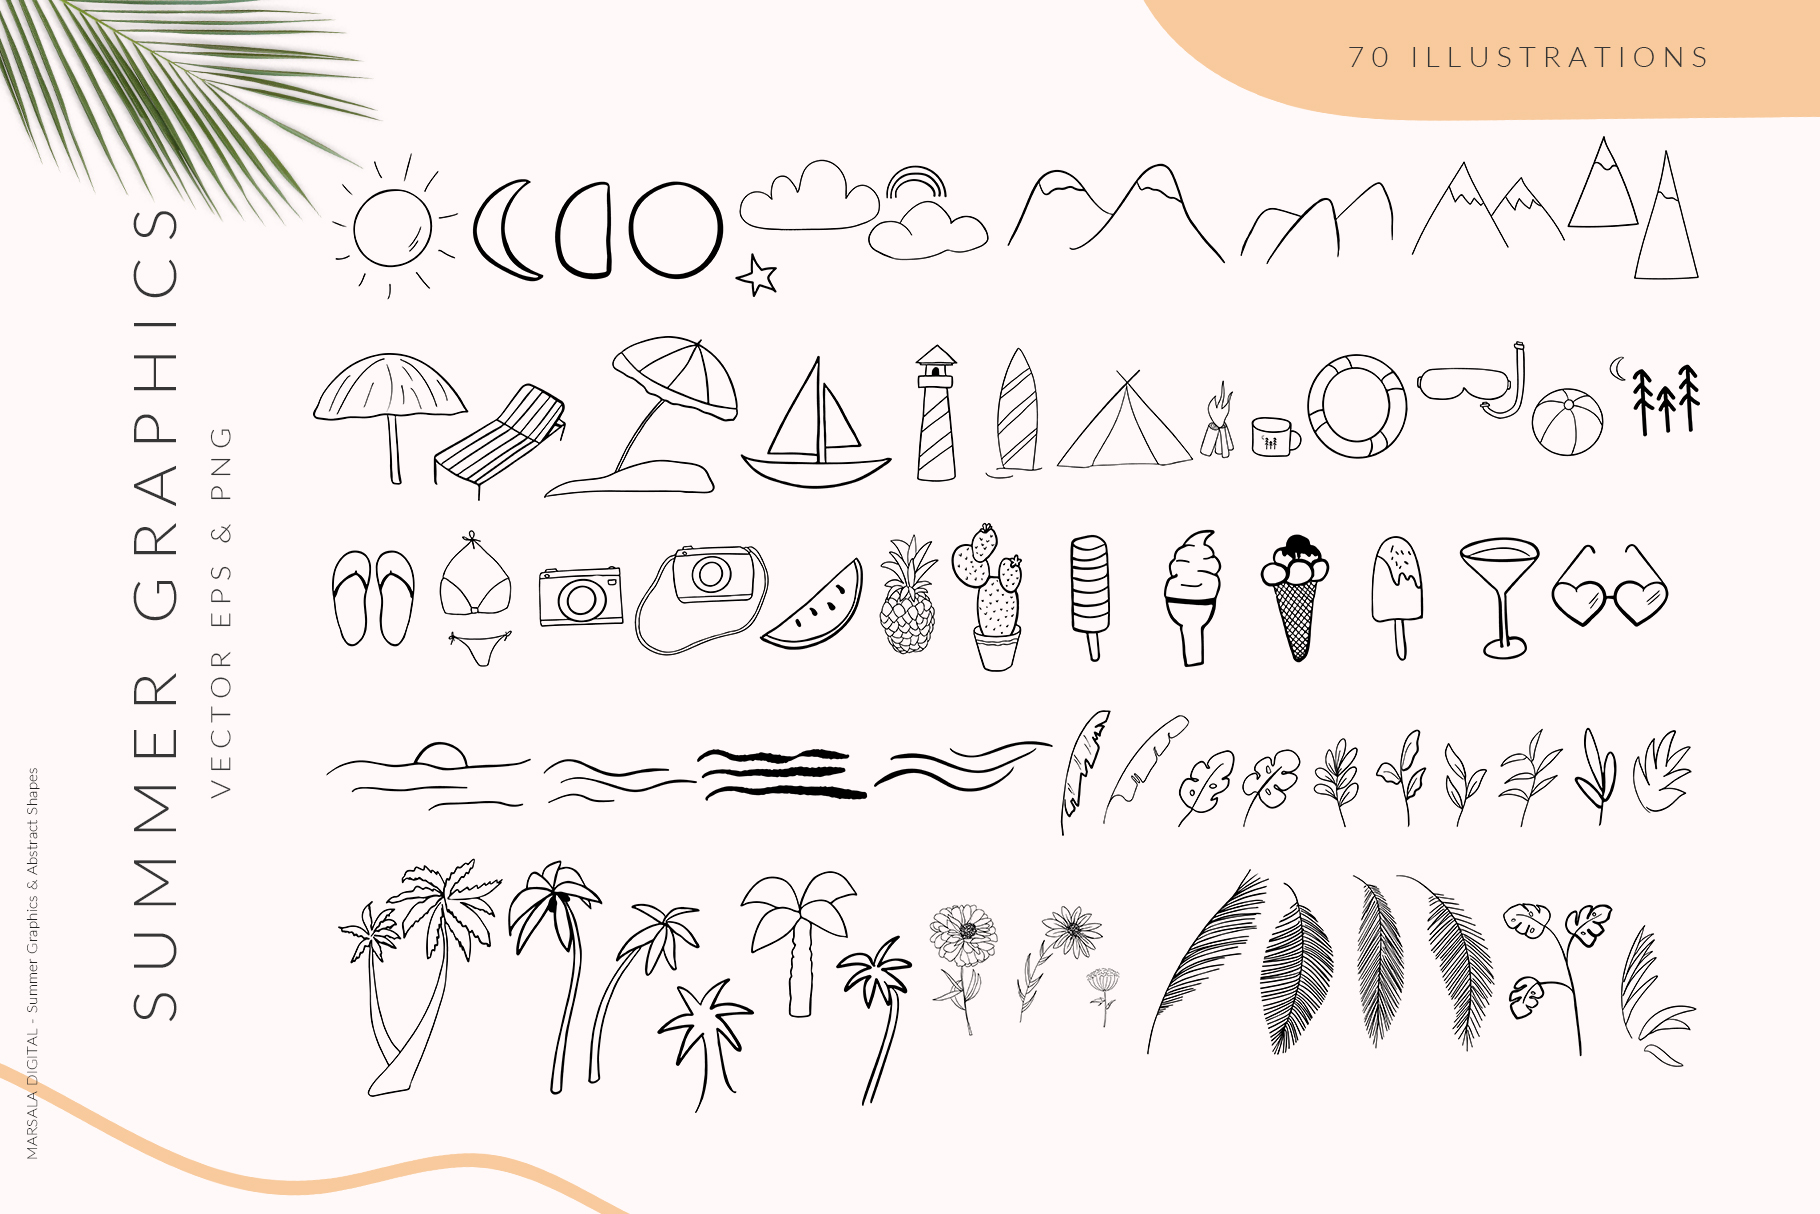 Abstract Shapes & Summer Line Art Vector Cliparts example image 6